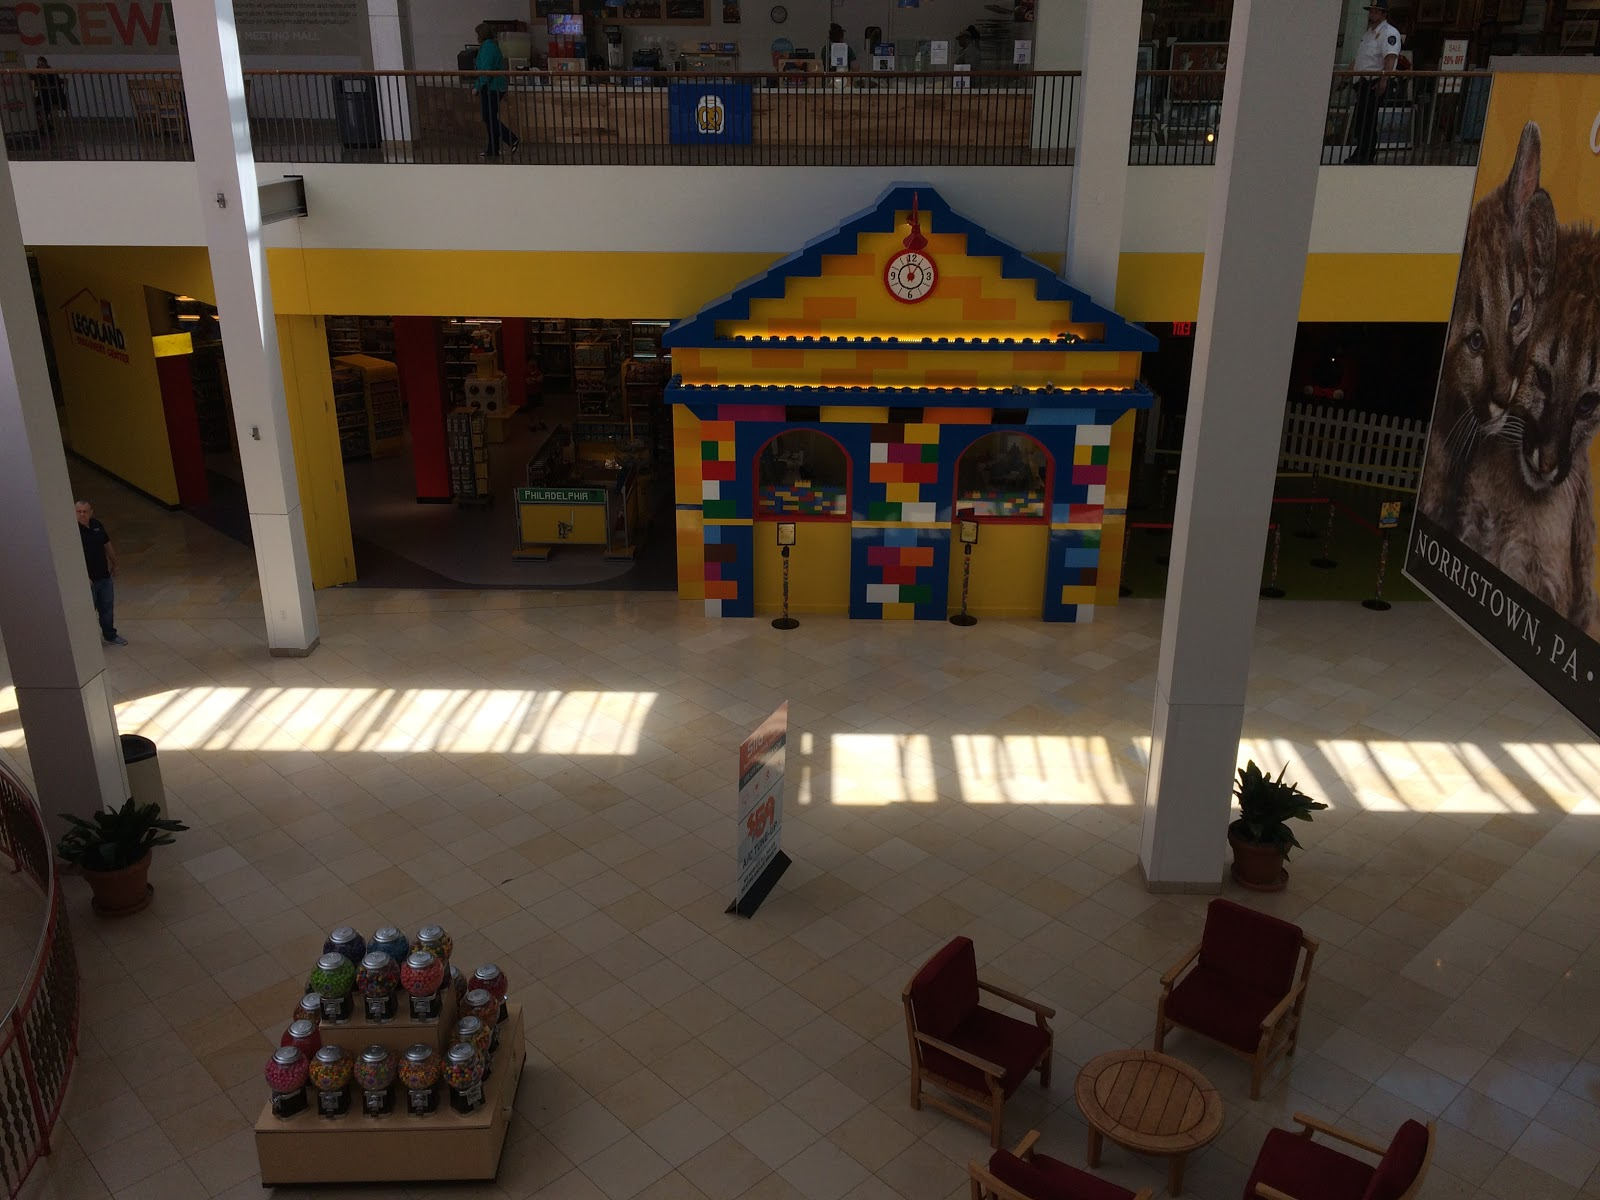 You can also download the legoland discovery center app to make the most of your trip i didn t do this because my phone is full of kids gaming apps and